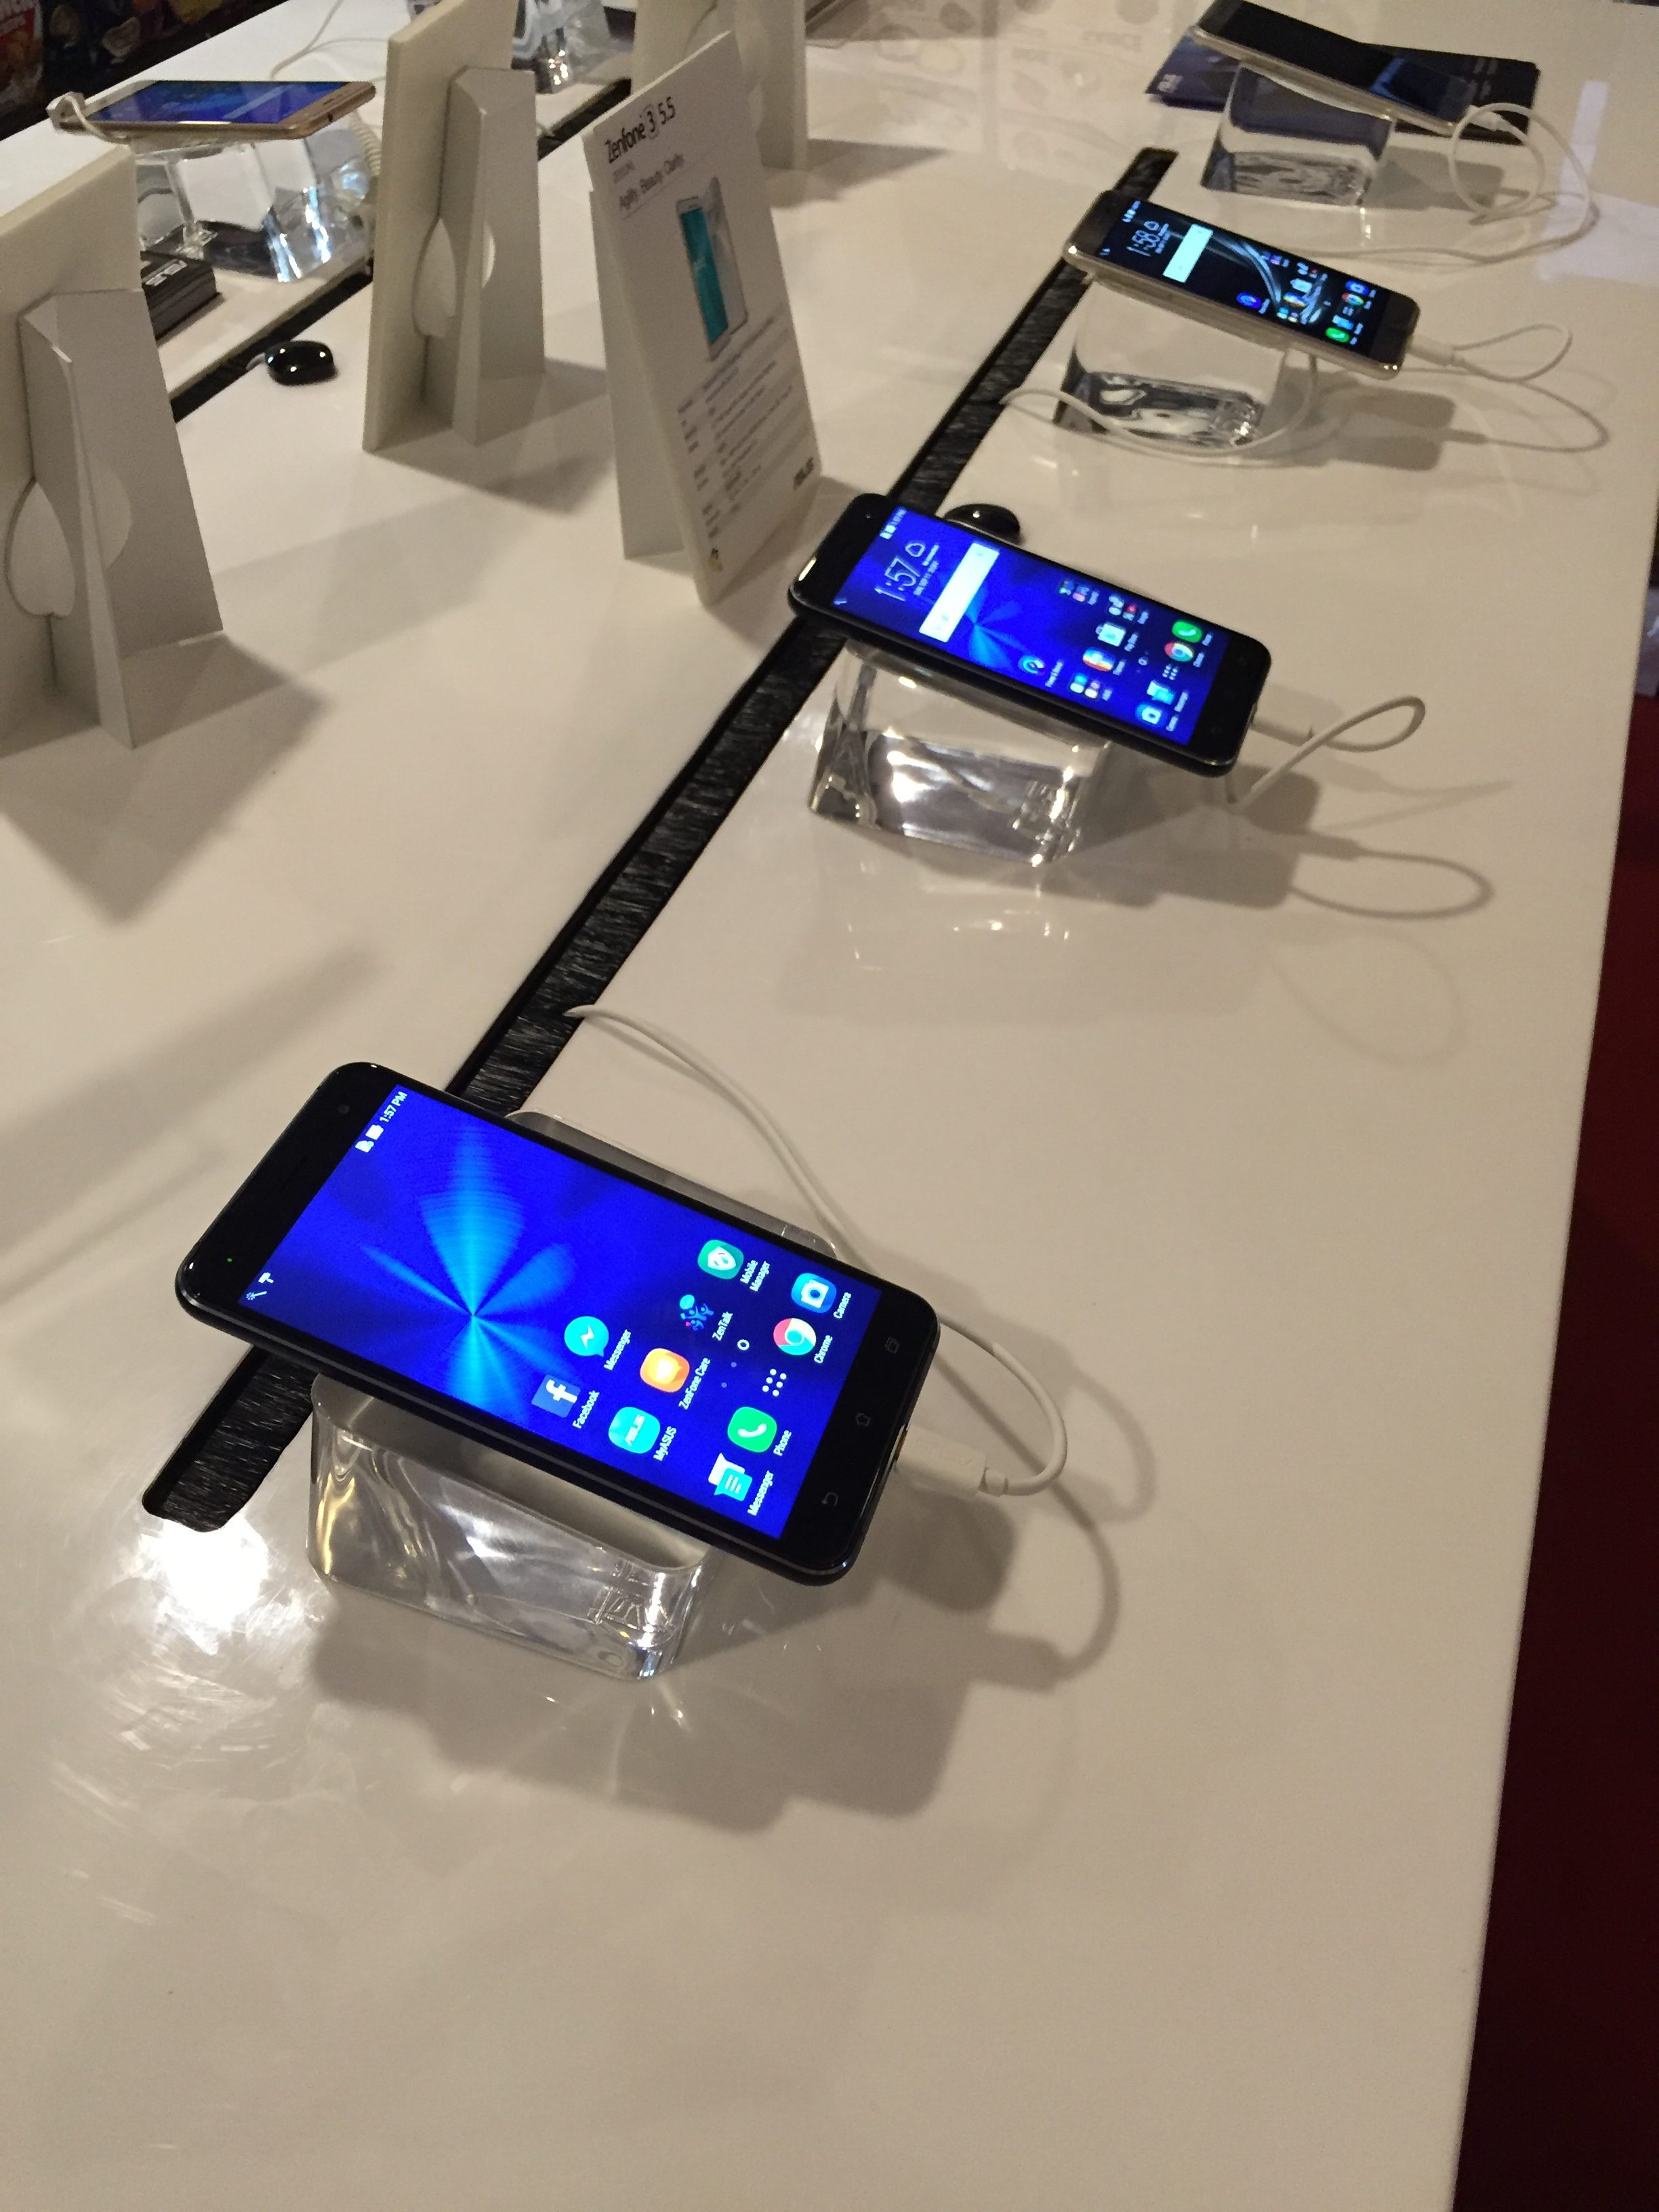 Asus mobile phones on full display!